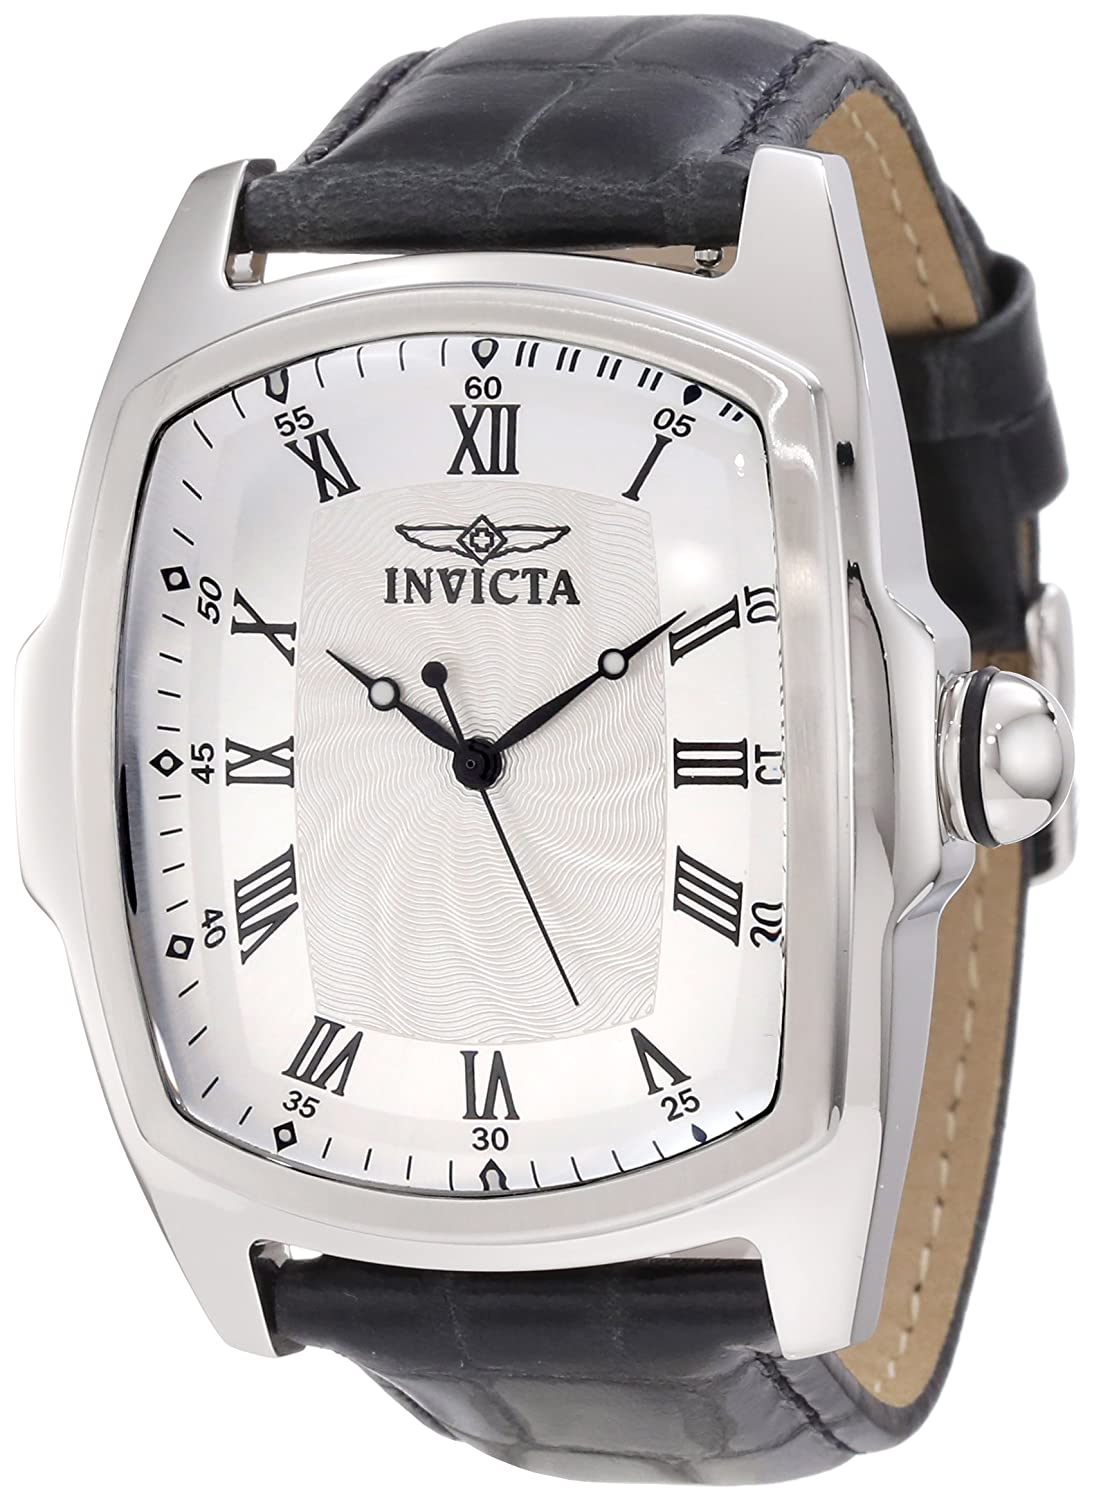 Invicta Men's 12849 Lupah Silver Dial Leather Watch Set with Interchangeable Straps$59.99